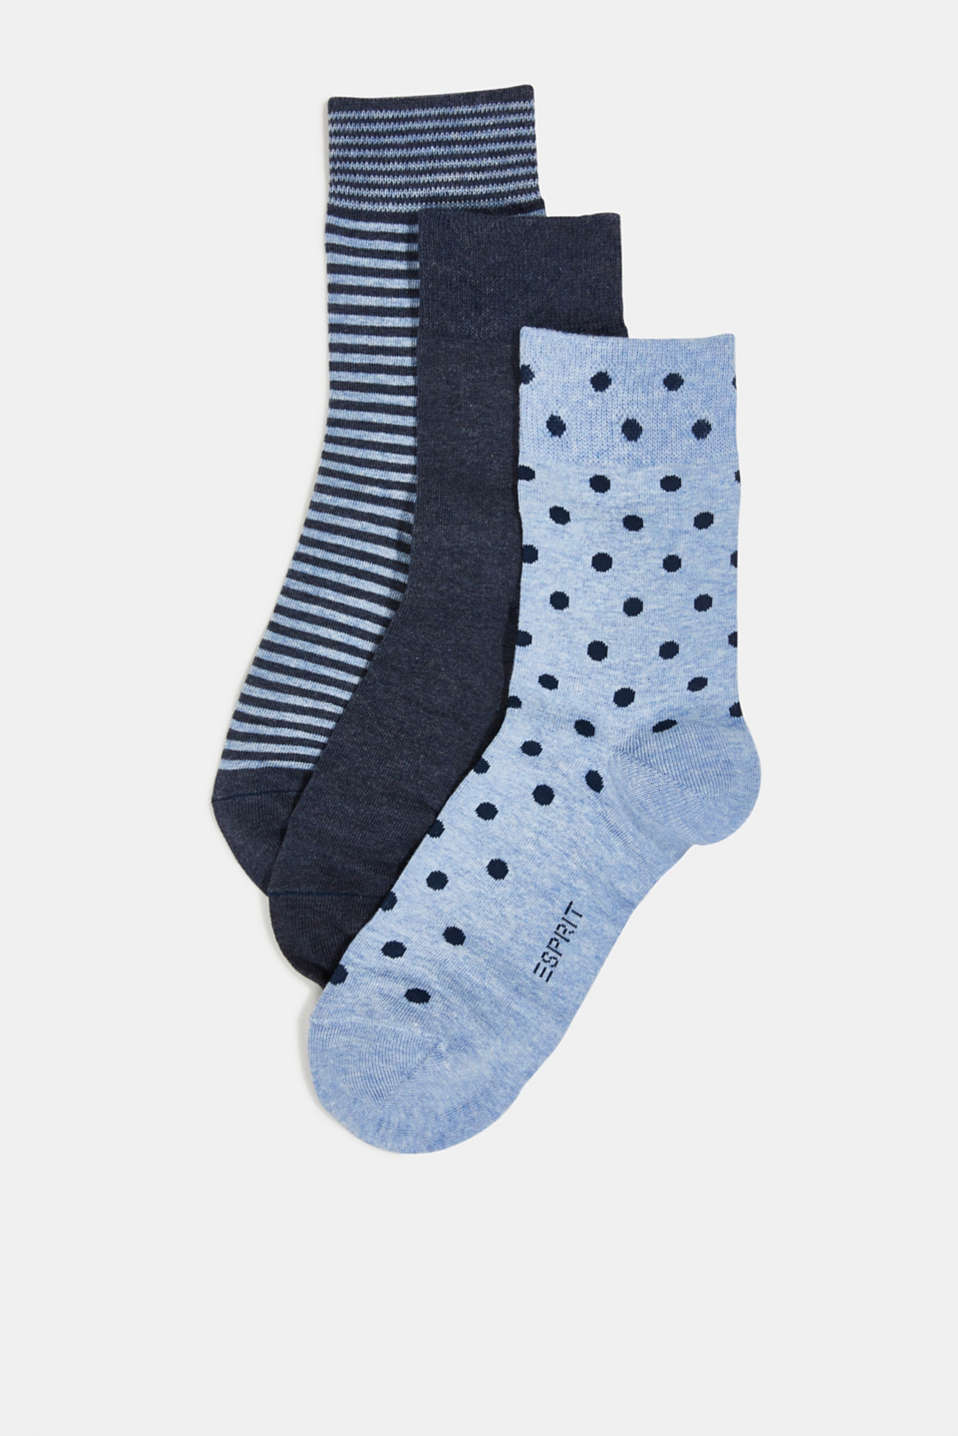 Esprit - Gift box containing a triple pack of socks